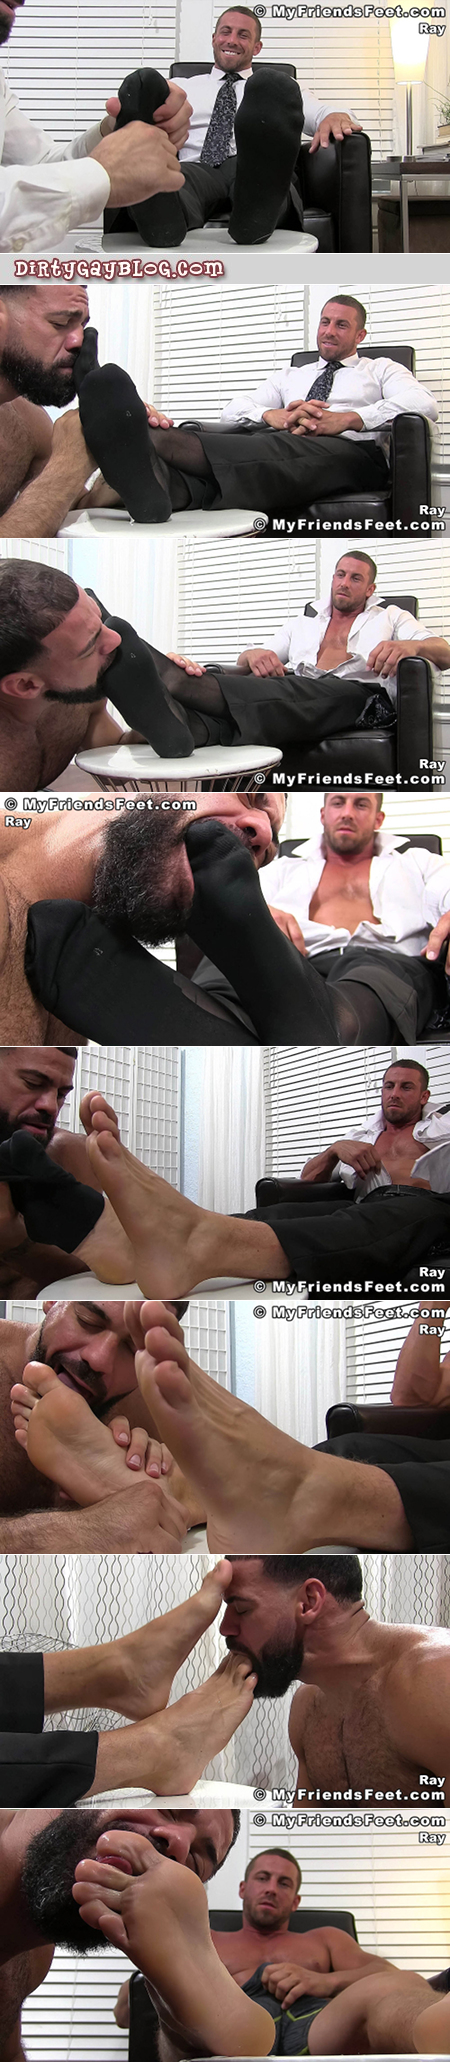 Hunky businessman having his feet worshiped by another man.